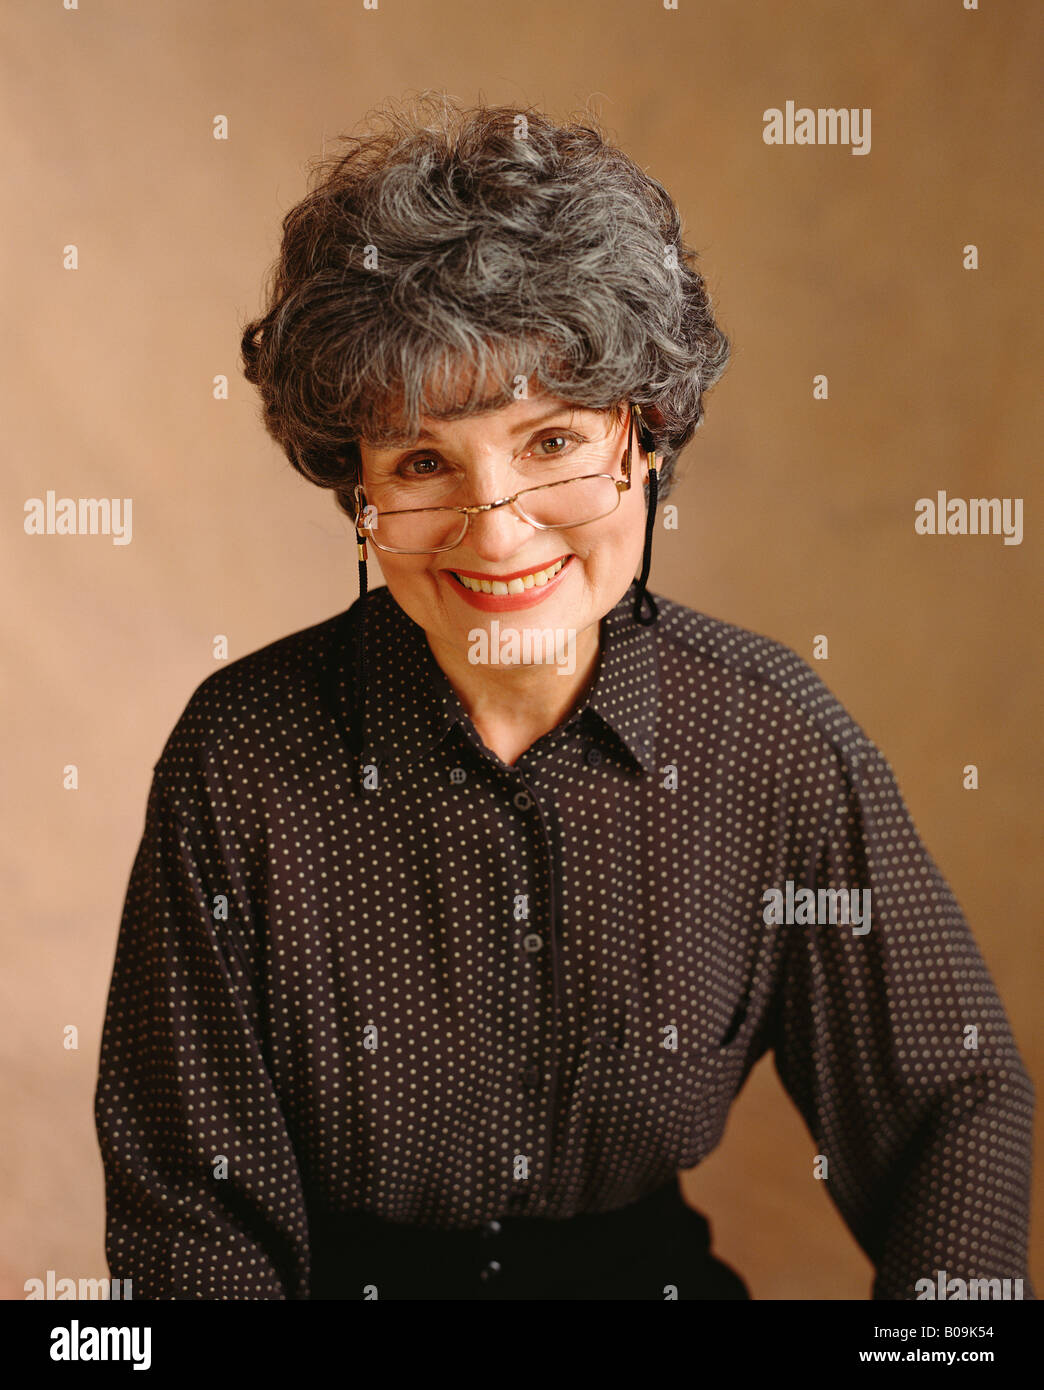 ab900b4a73 An happy smile from an older woman with gray hair and reading glasses in a studio  portrait